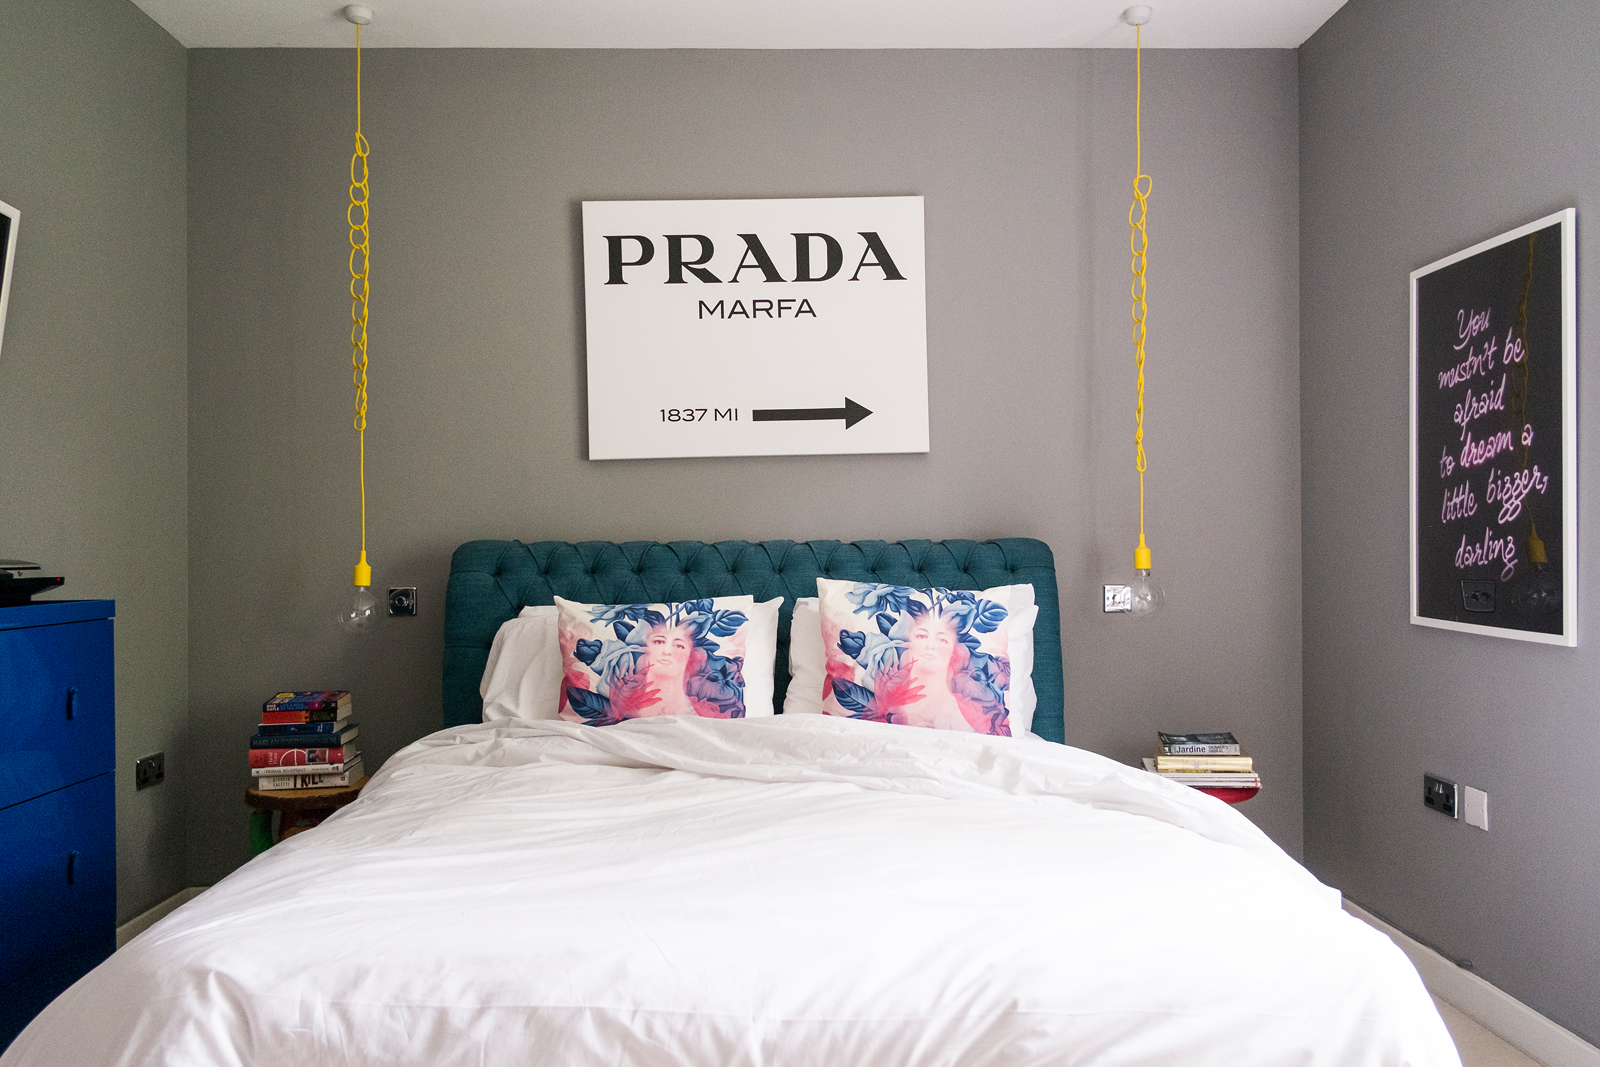 Emilie's bed is WELL comfy. And I know exactly how to get to Prada from here